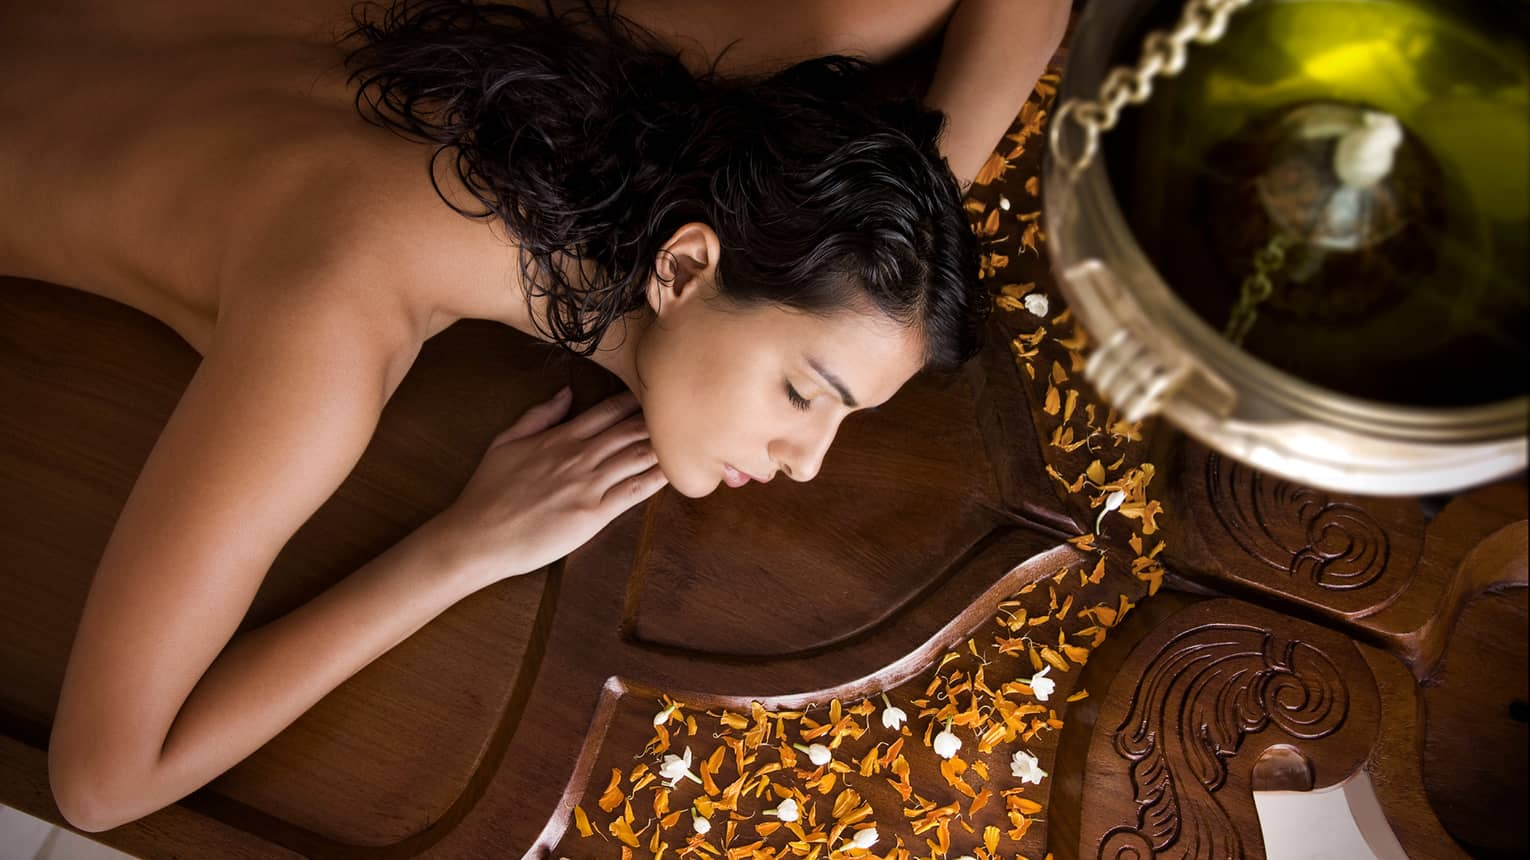 Side view of woman with bare back, shoulders lying on wood Spa table, orange flower petals